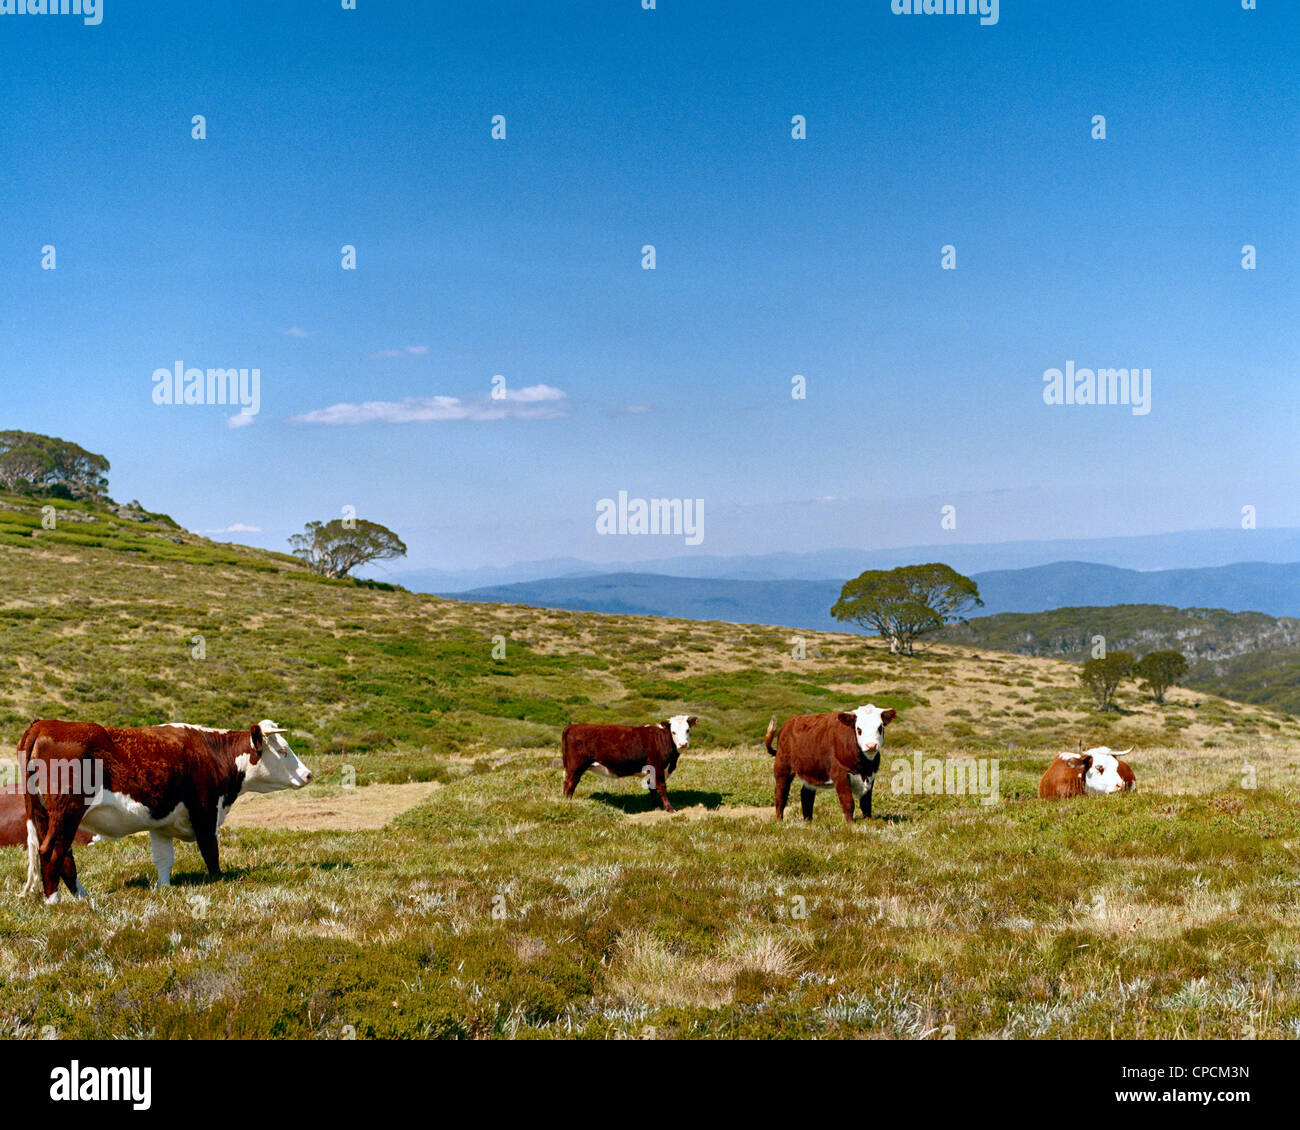 Hereford cattle in the Victorian High Country Australia - Stock Image